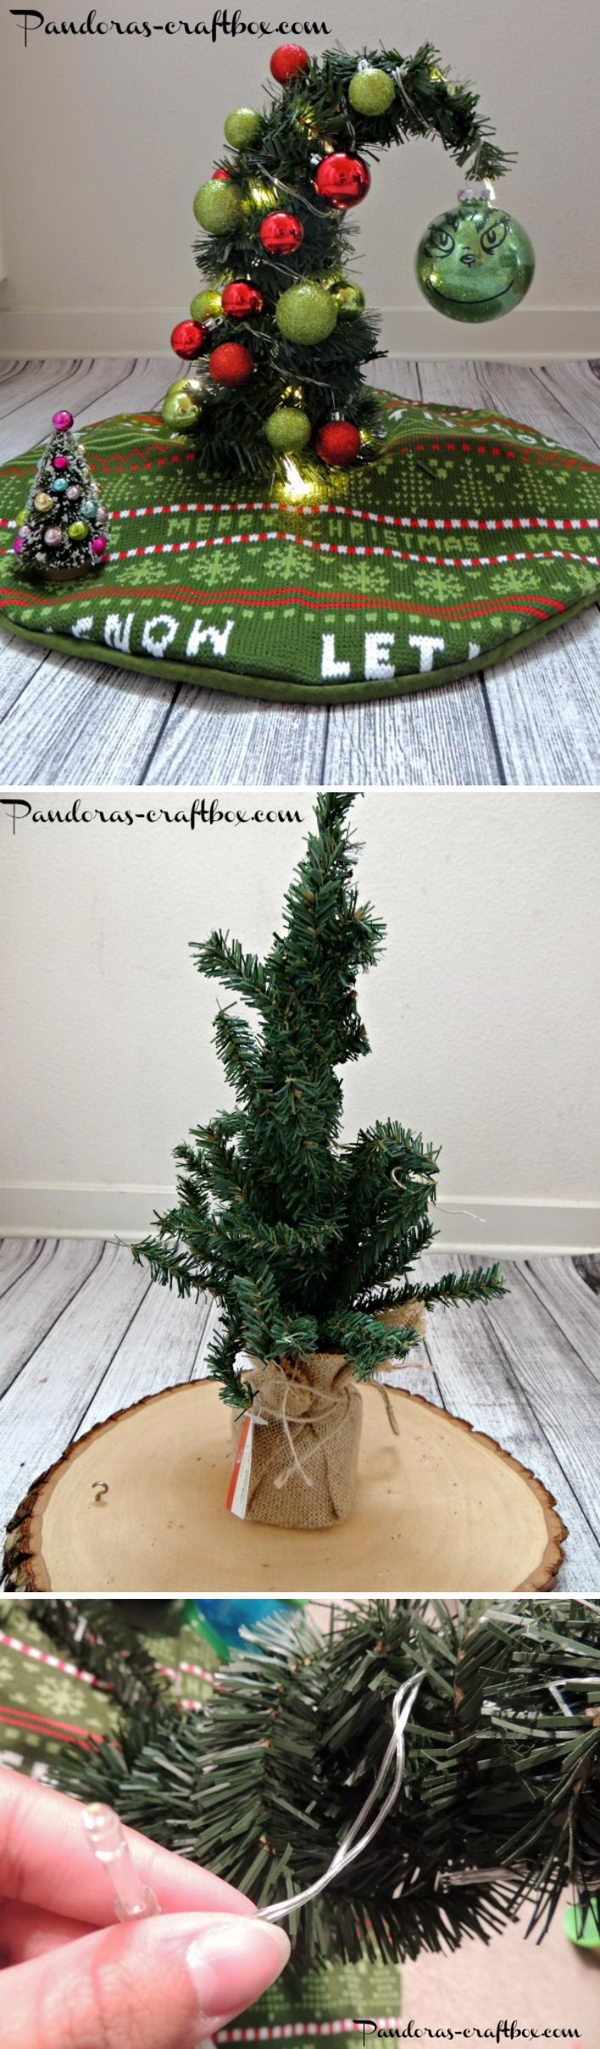 DIY Grinch Christmas Tree.